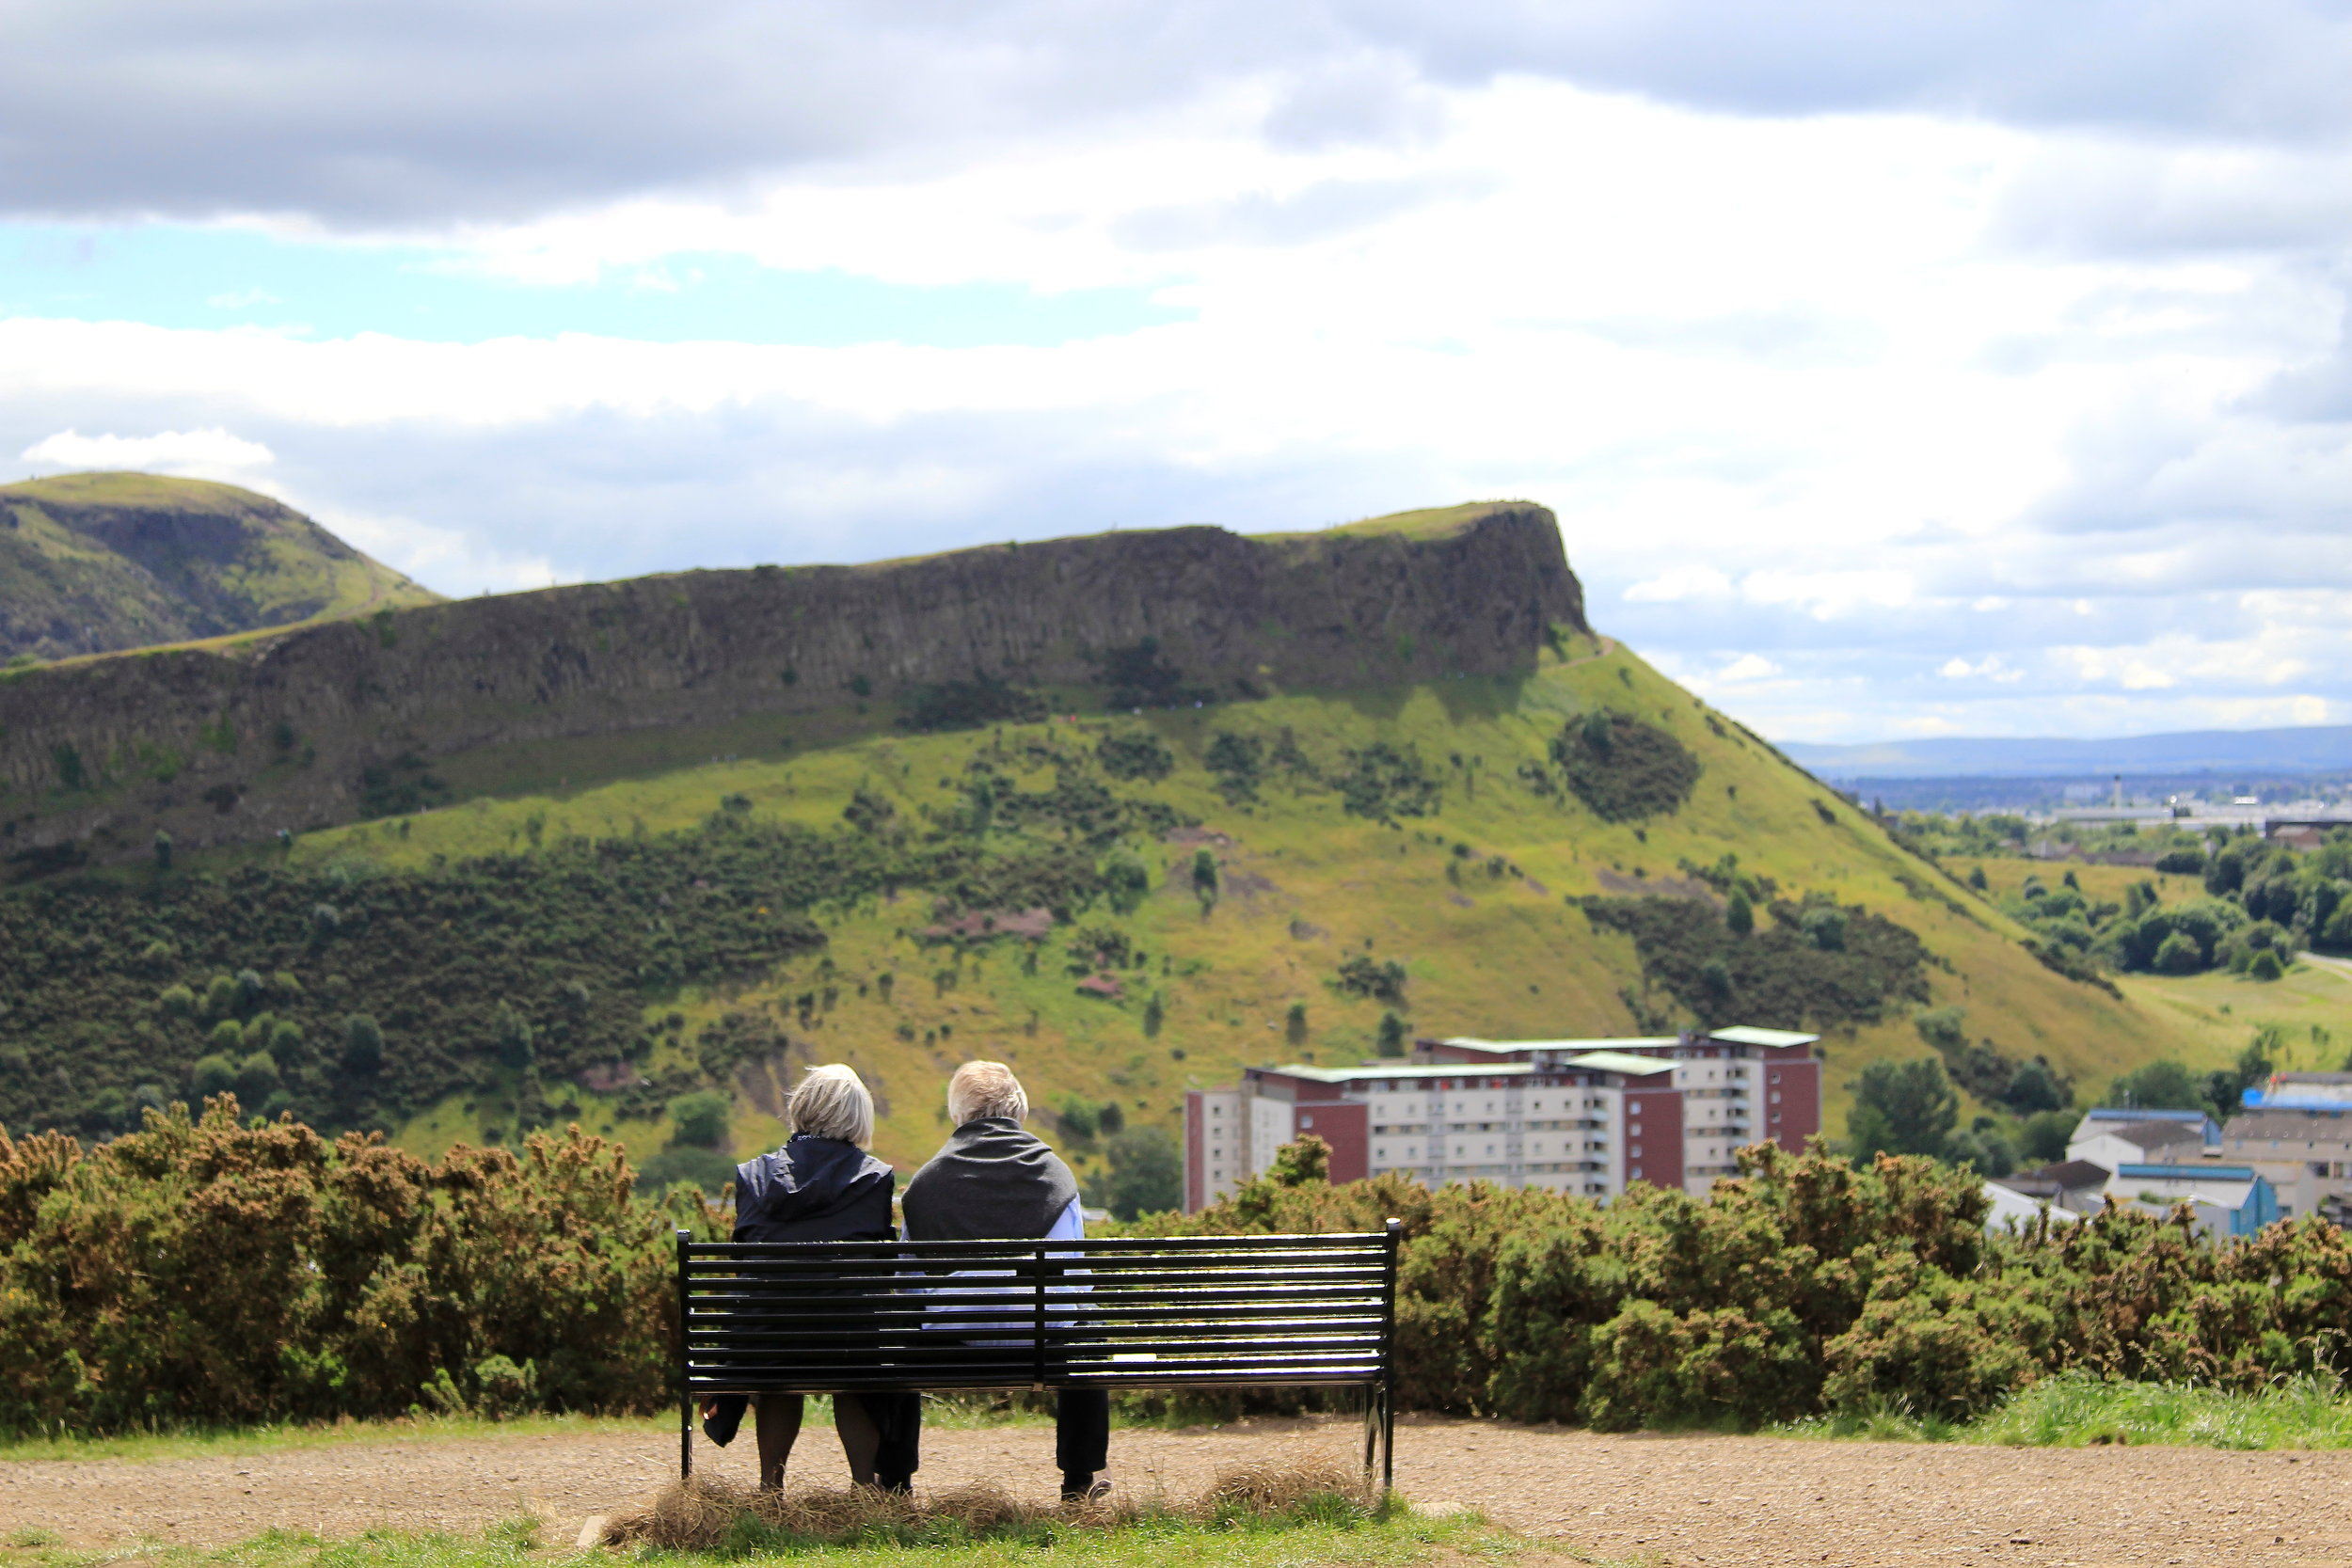 A couple taking in the view of Arthur's Seat, Edinburgh